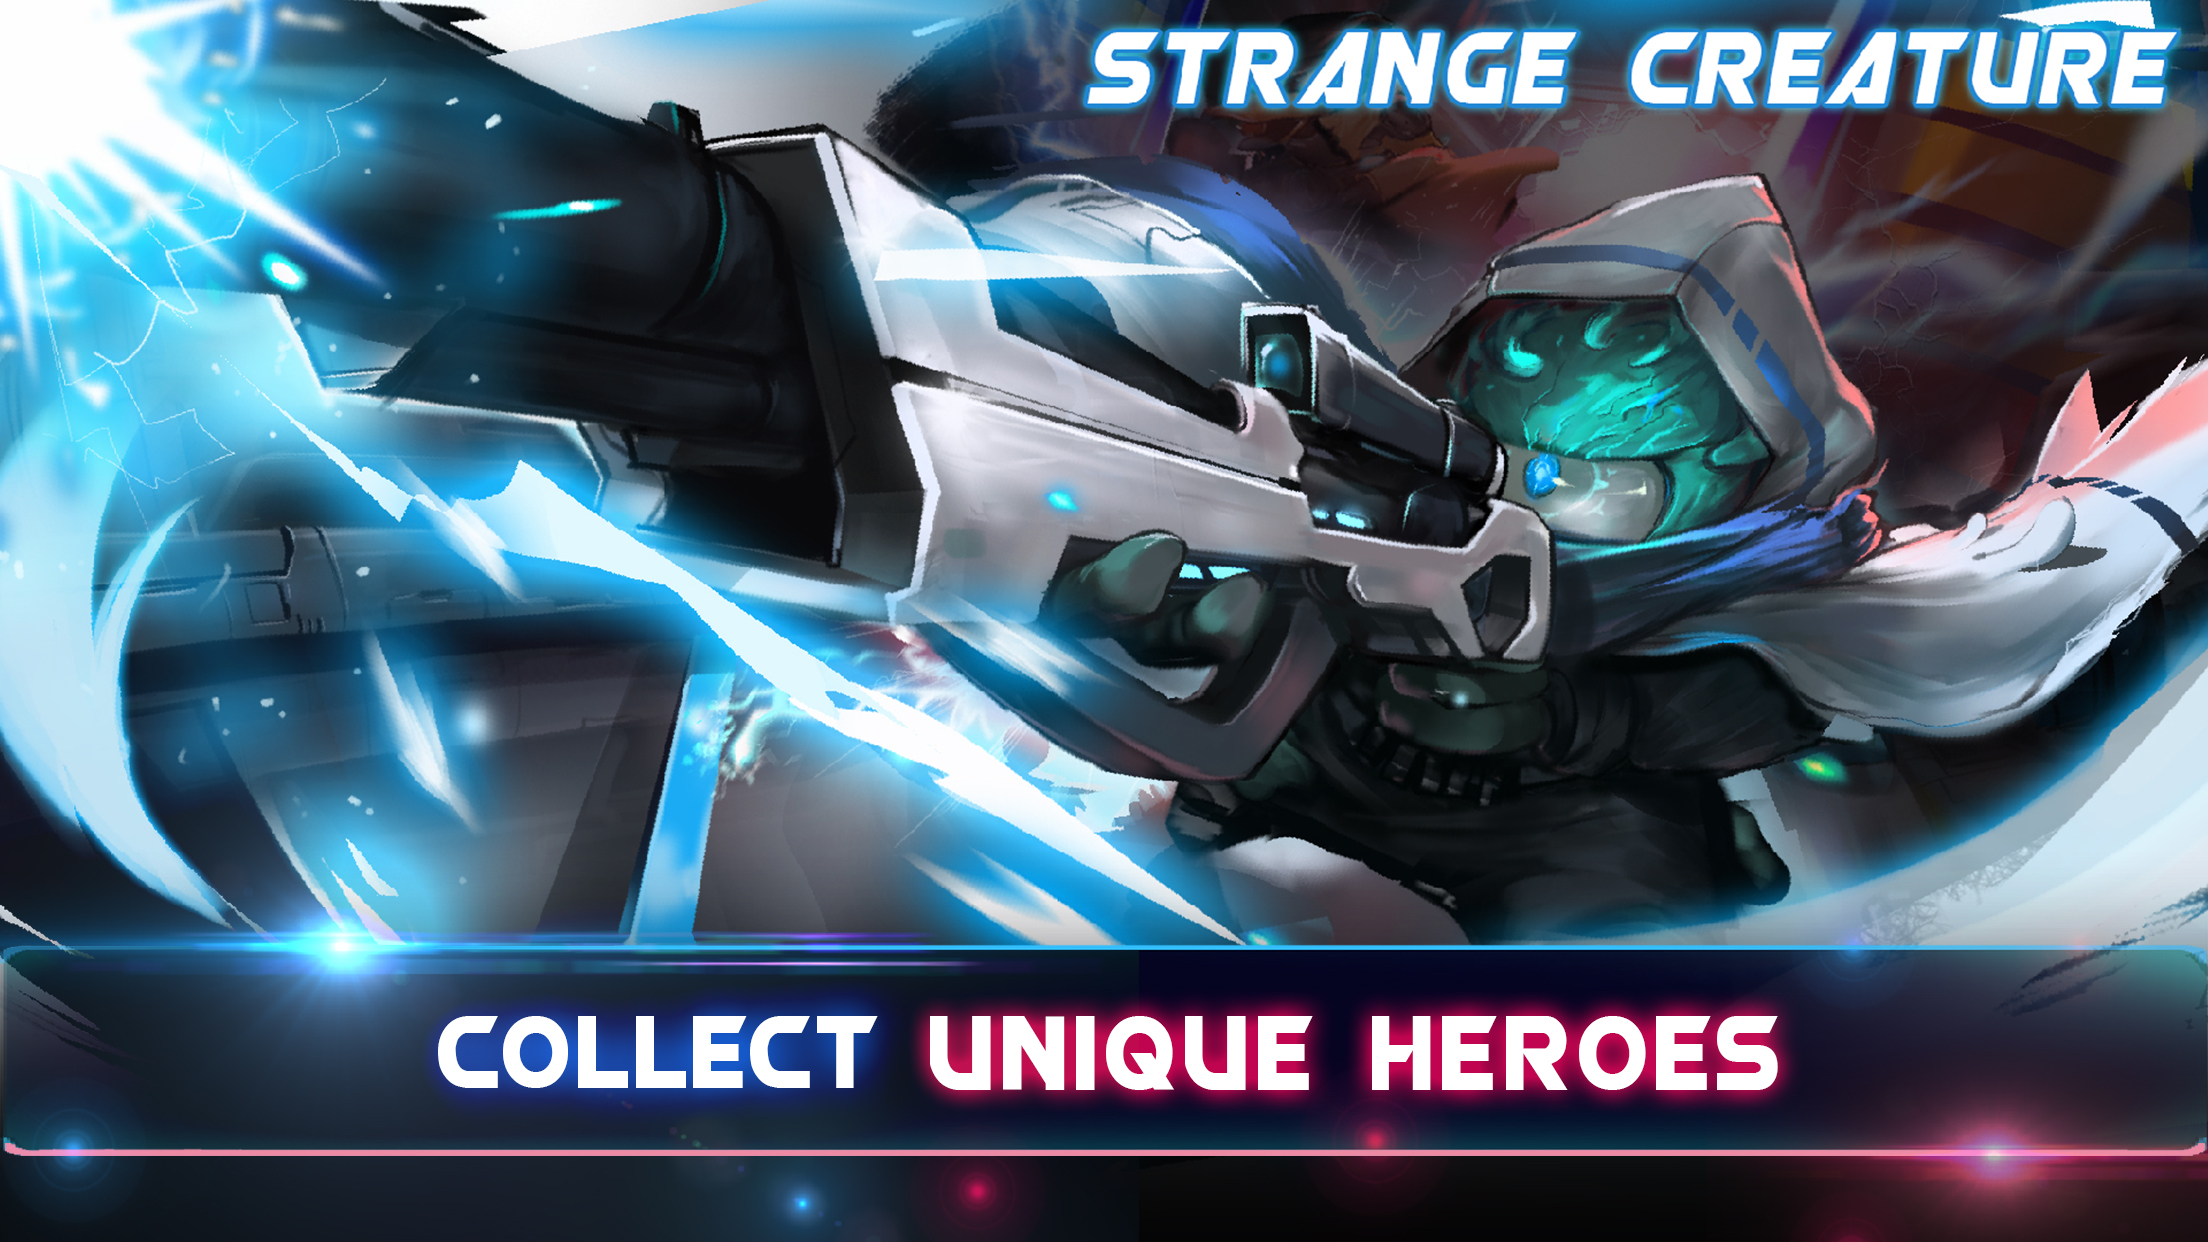 Collect unique heroes